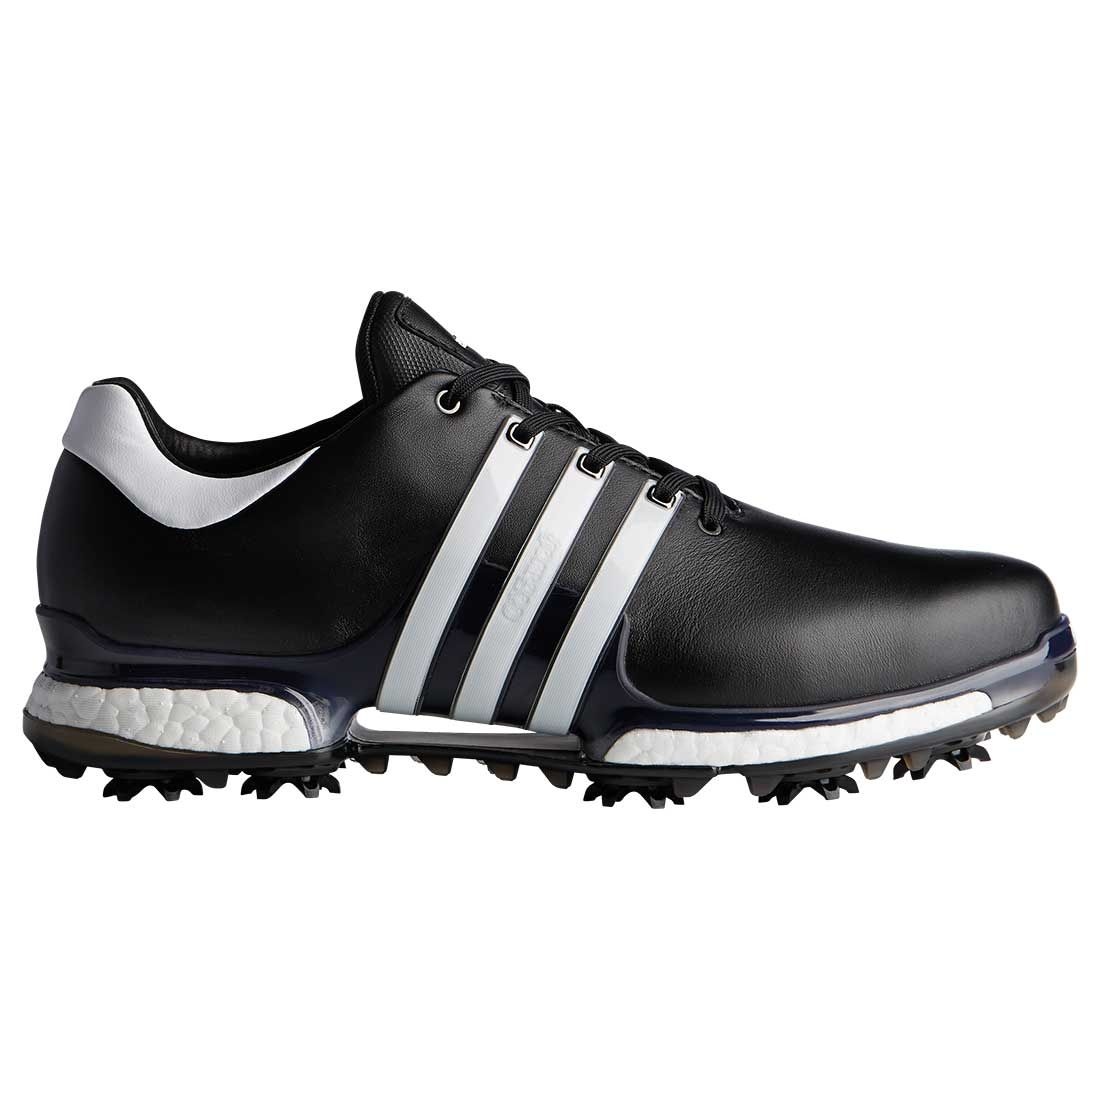 Buy Adidas Tour360 Boost 2 0 Golf Shoes Black White Golf Discount